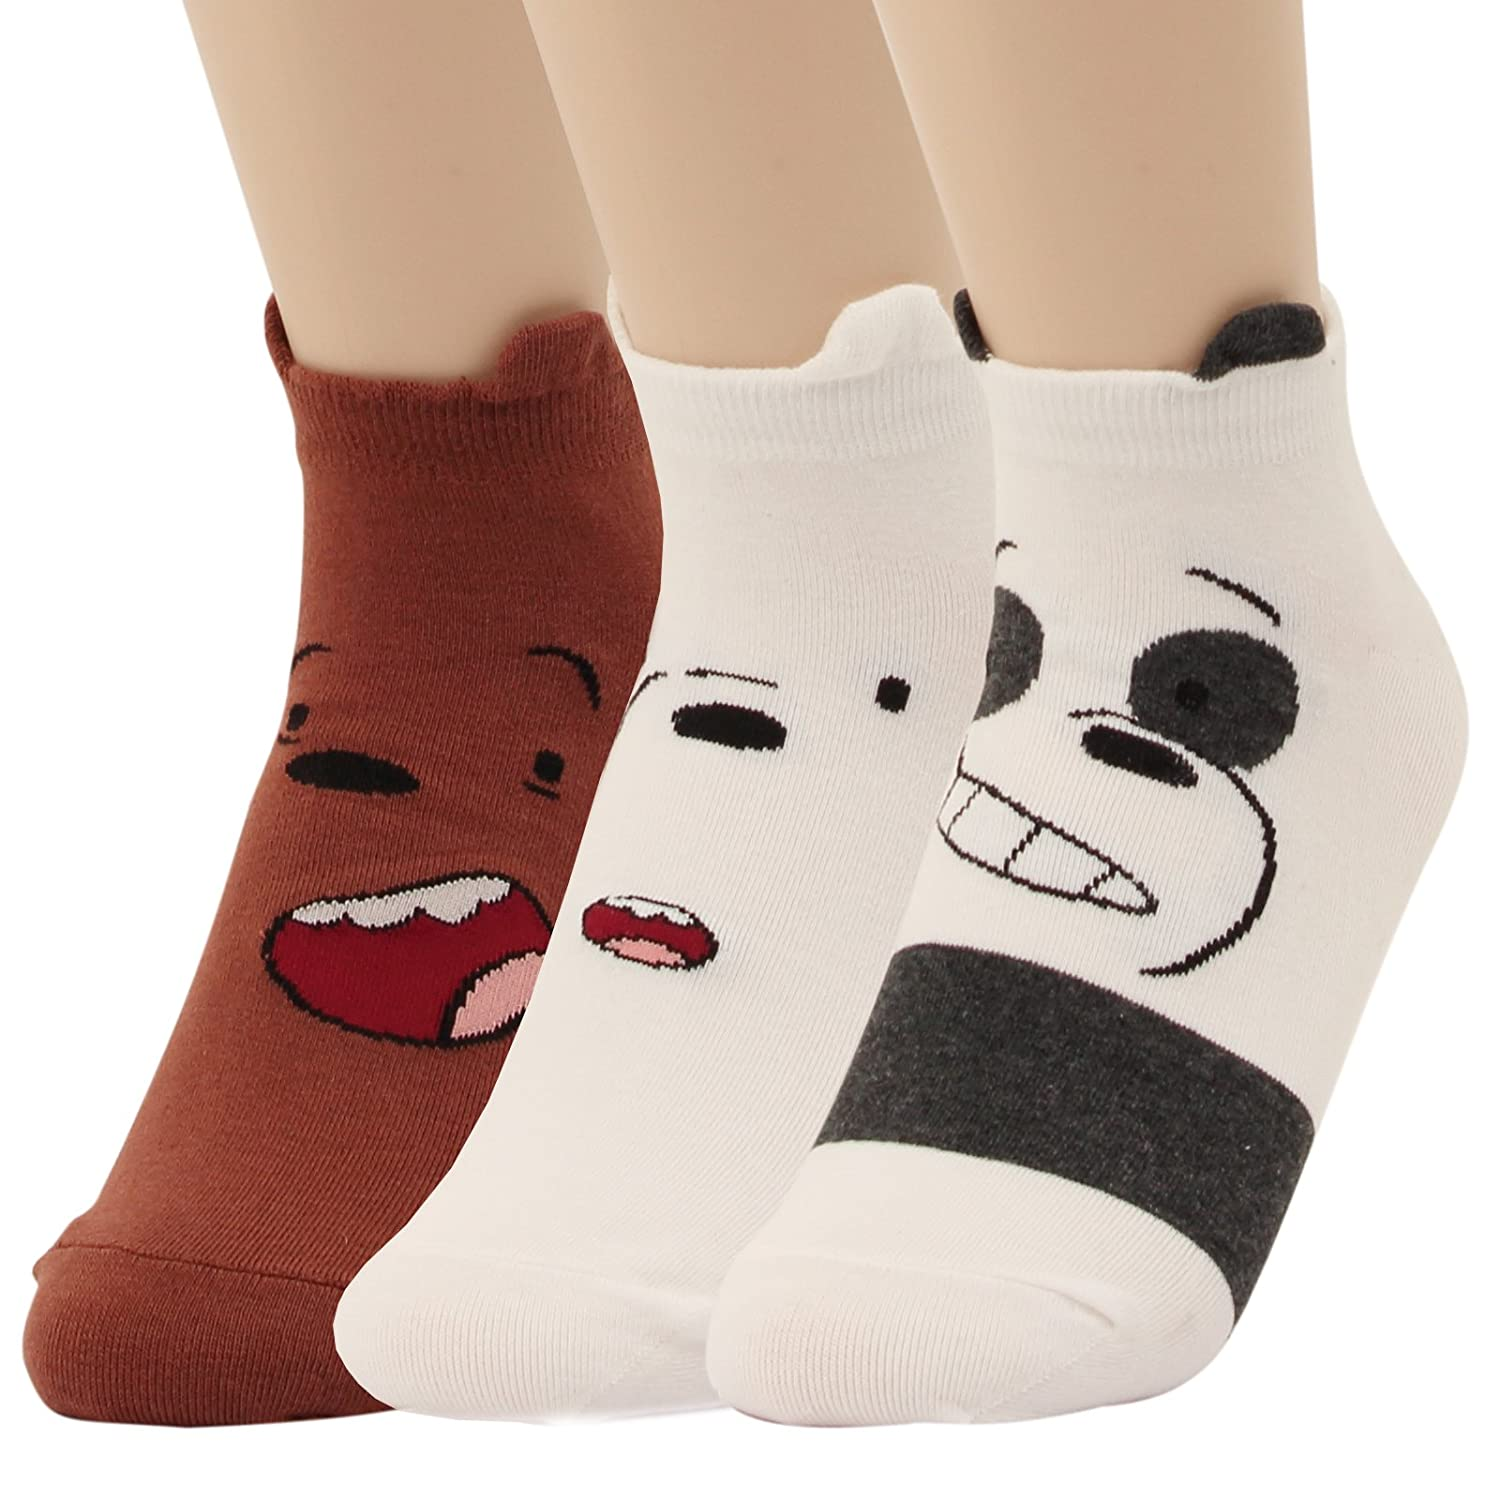 We Bare Bears Cartoon Series Cute Design Low Cut Cotton Socks For Women (Model No.1-3pairs) at Amazon Womens Clothing store: